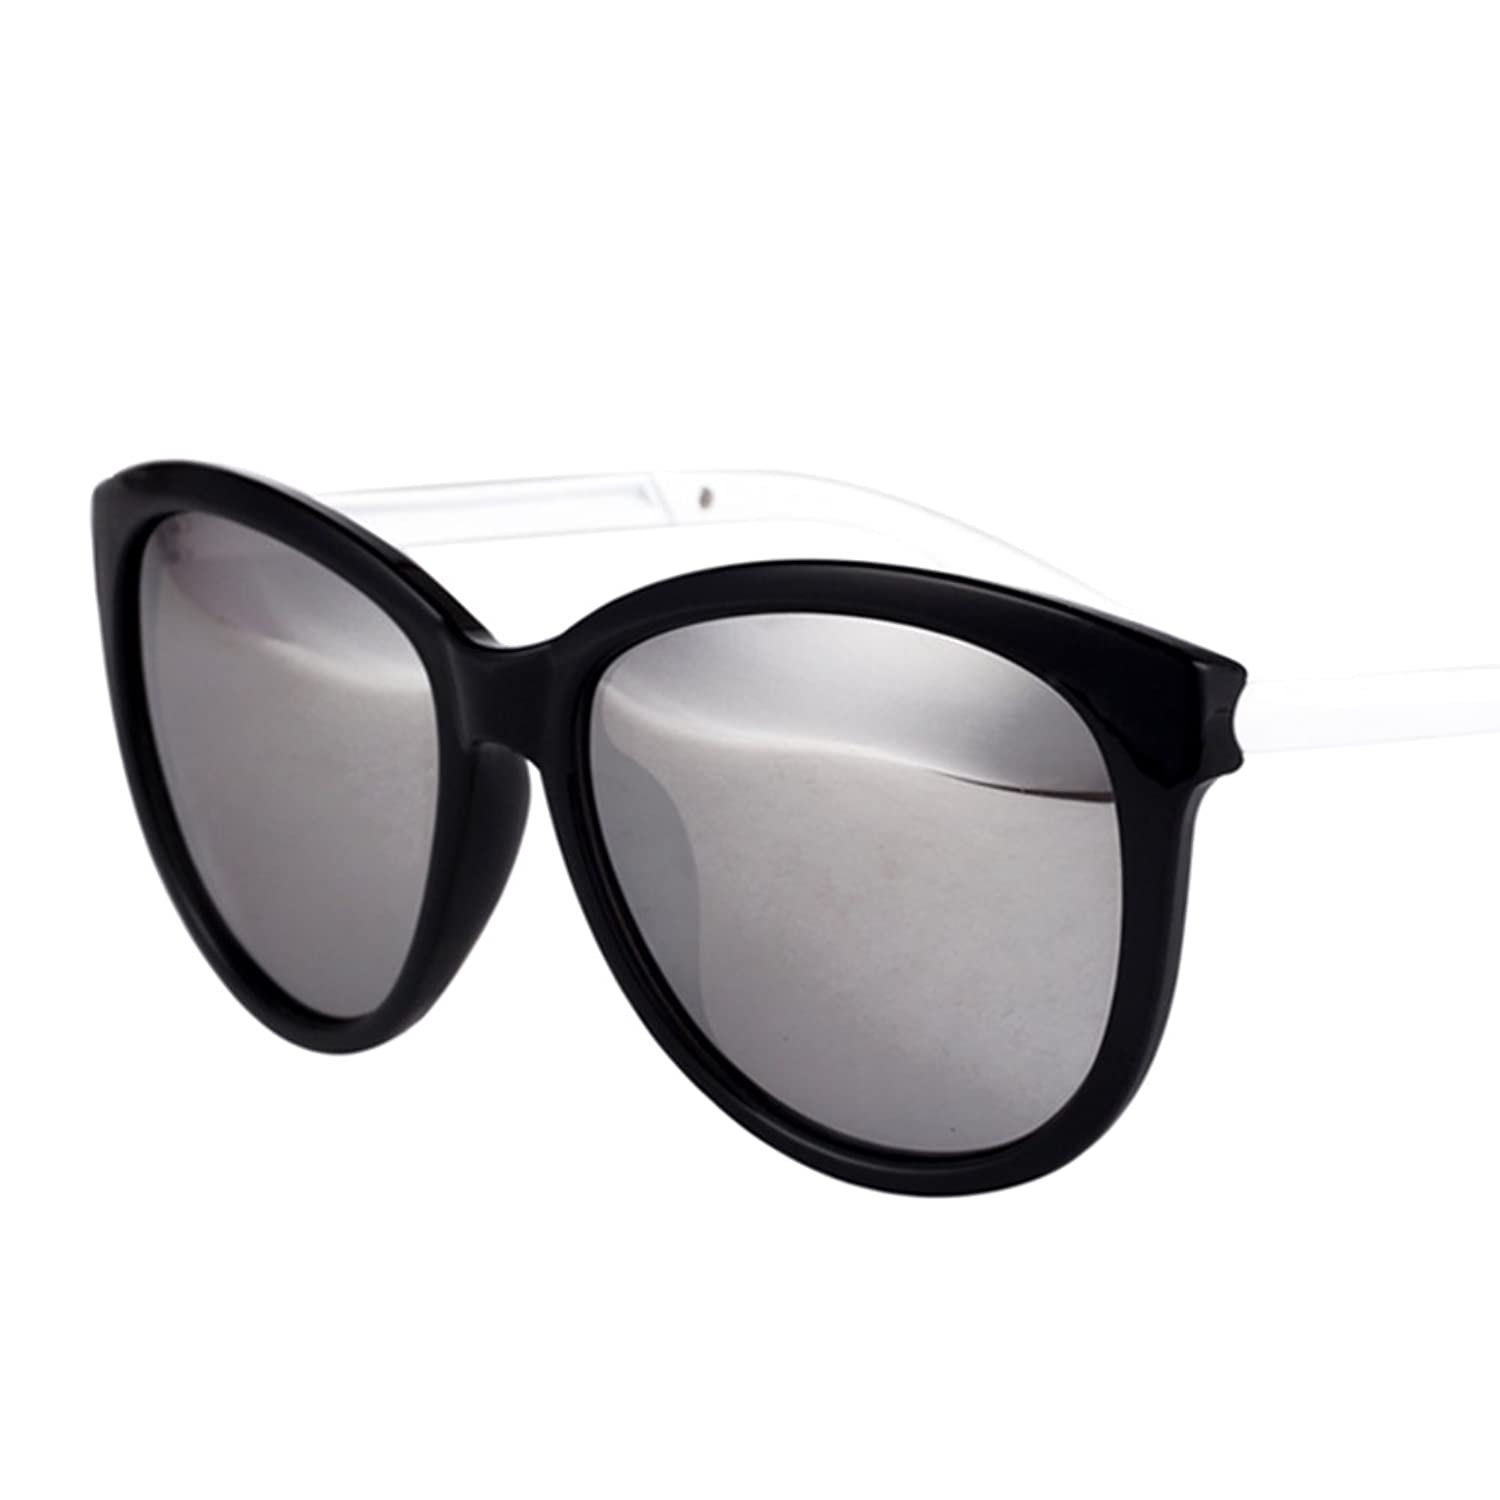 Boom box bright reverse luster membrane sunglasses/Current Korean sunglasses/Ladies fashion sunglasses